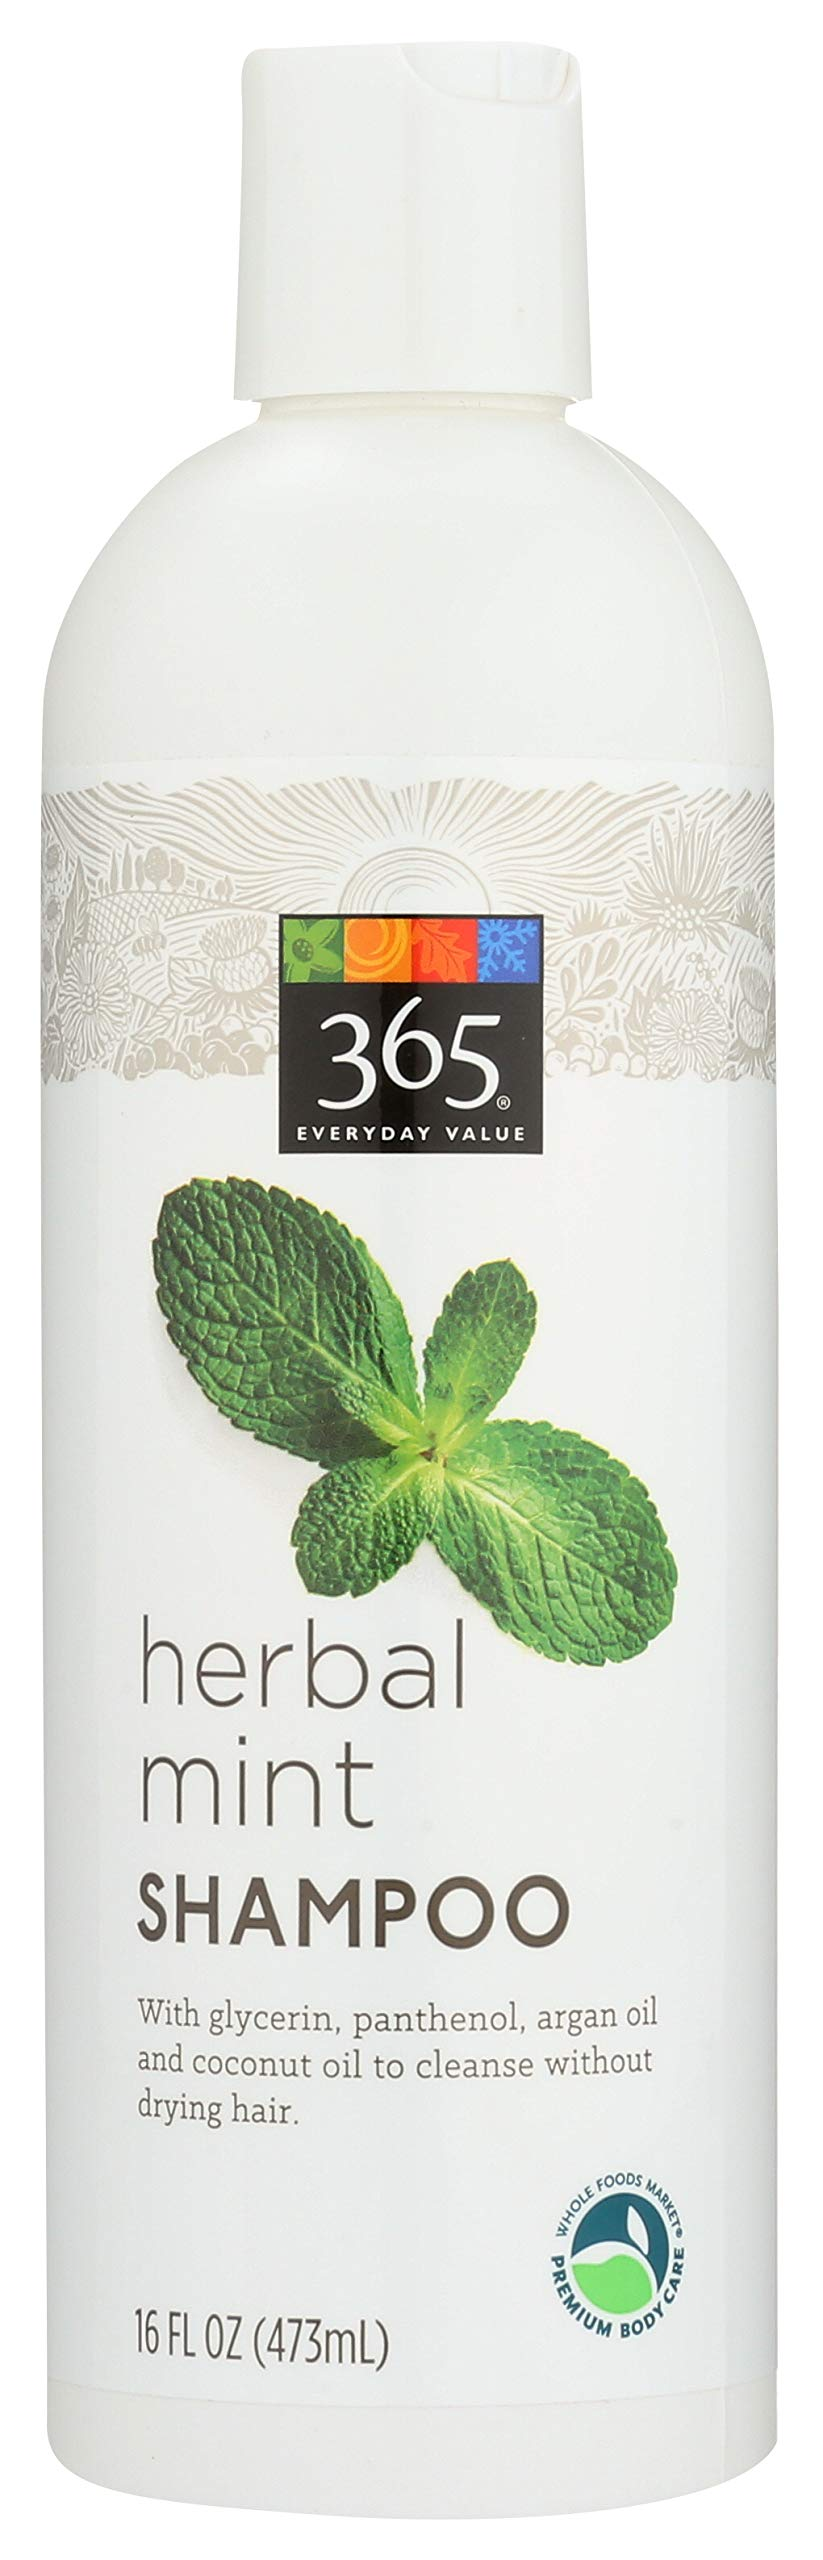 365 Everyday Value, Herbal Mint Shampoo, 16 fl oz